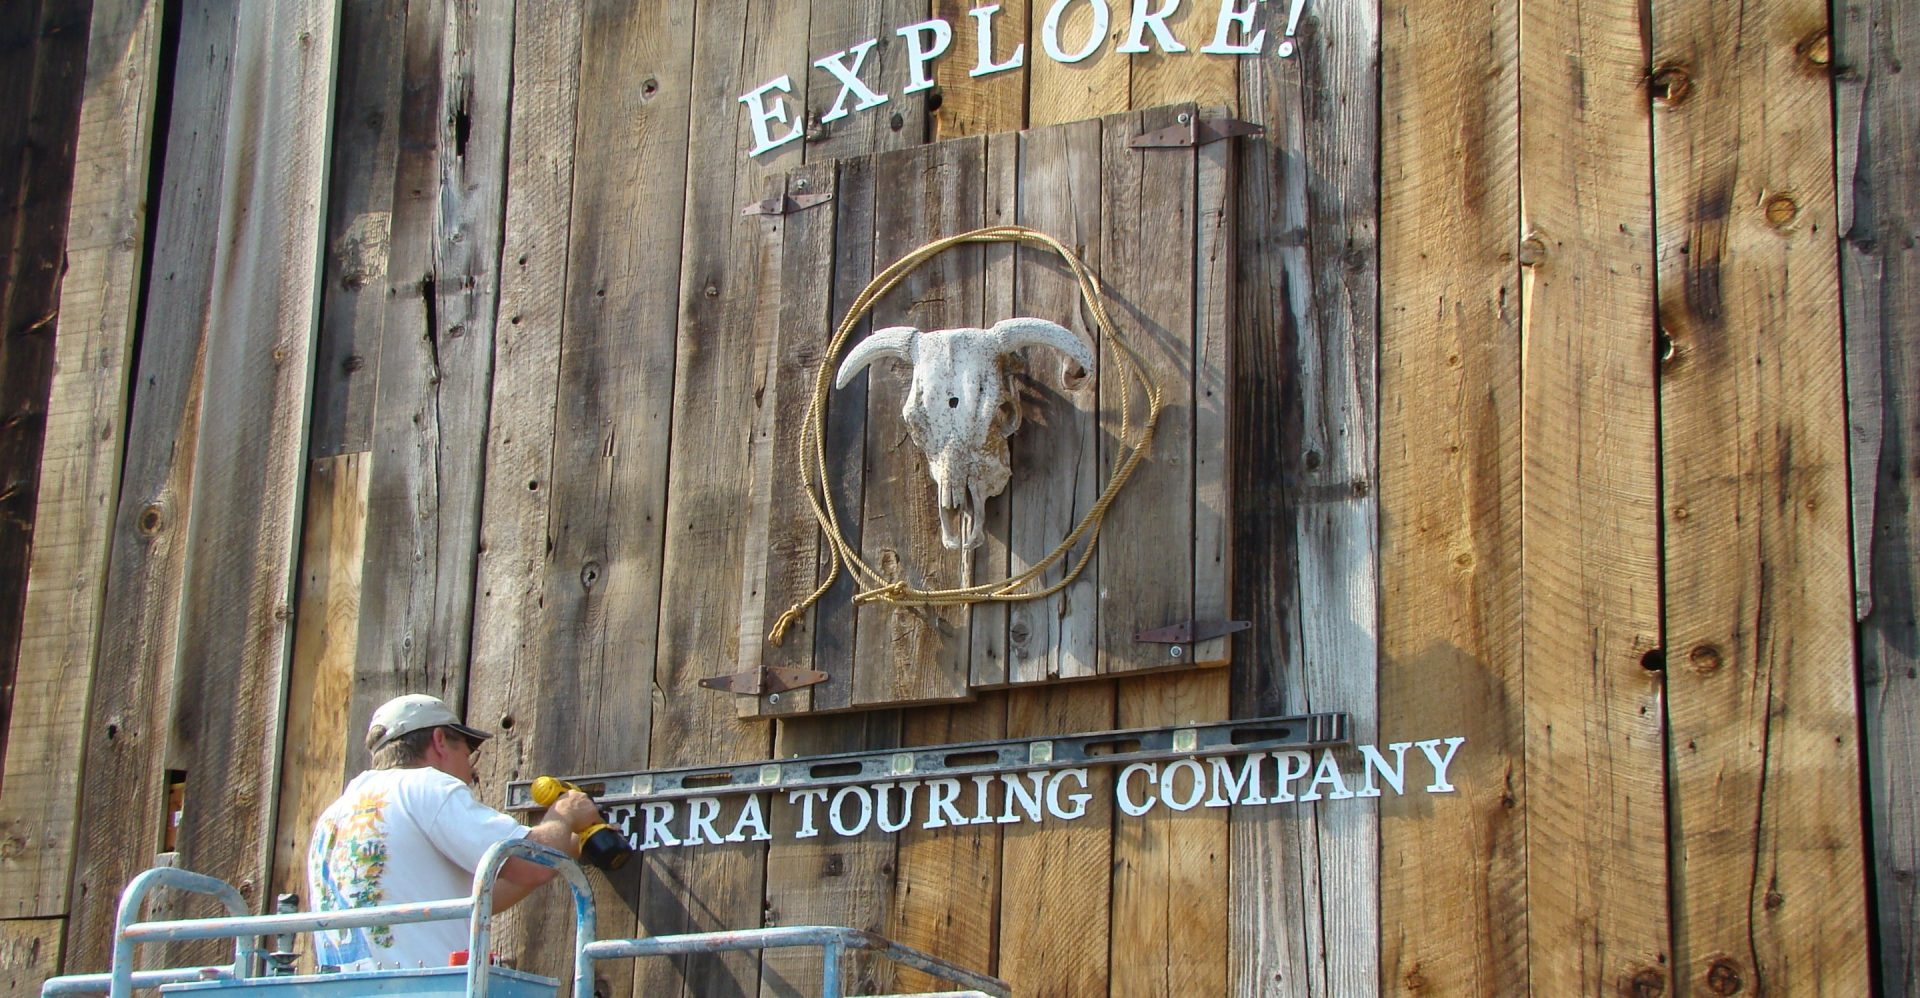 About Explore Sierra Touring Company